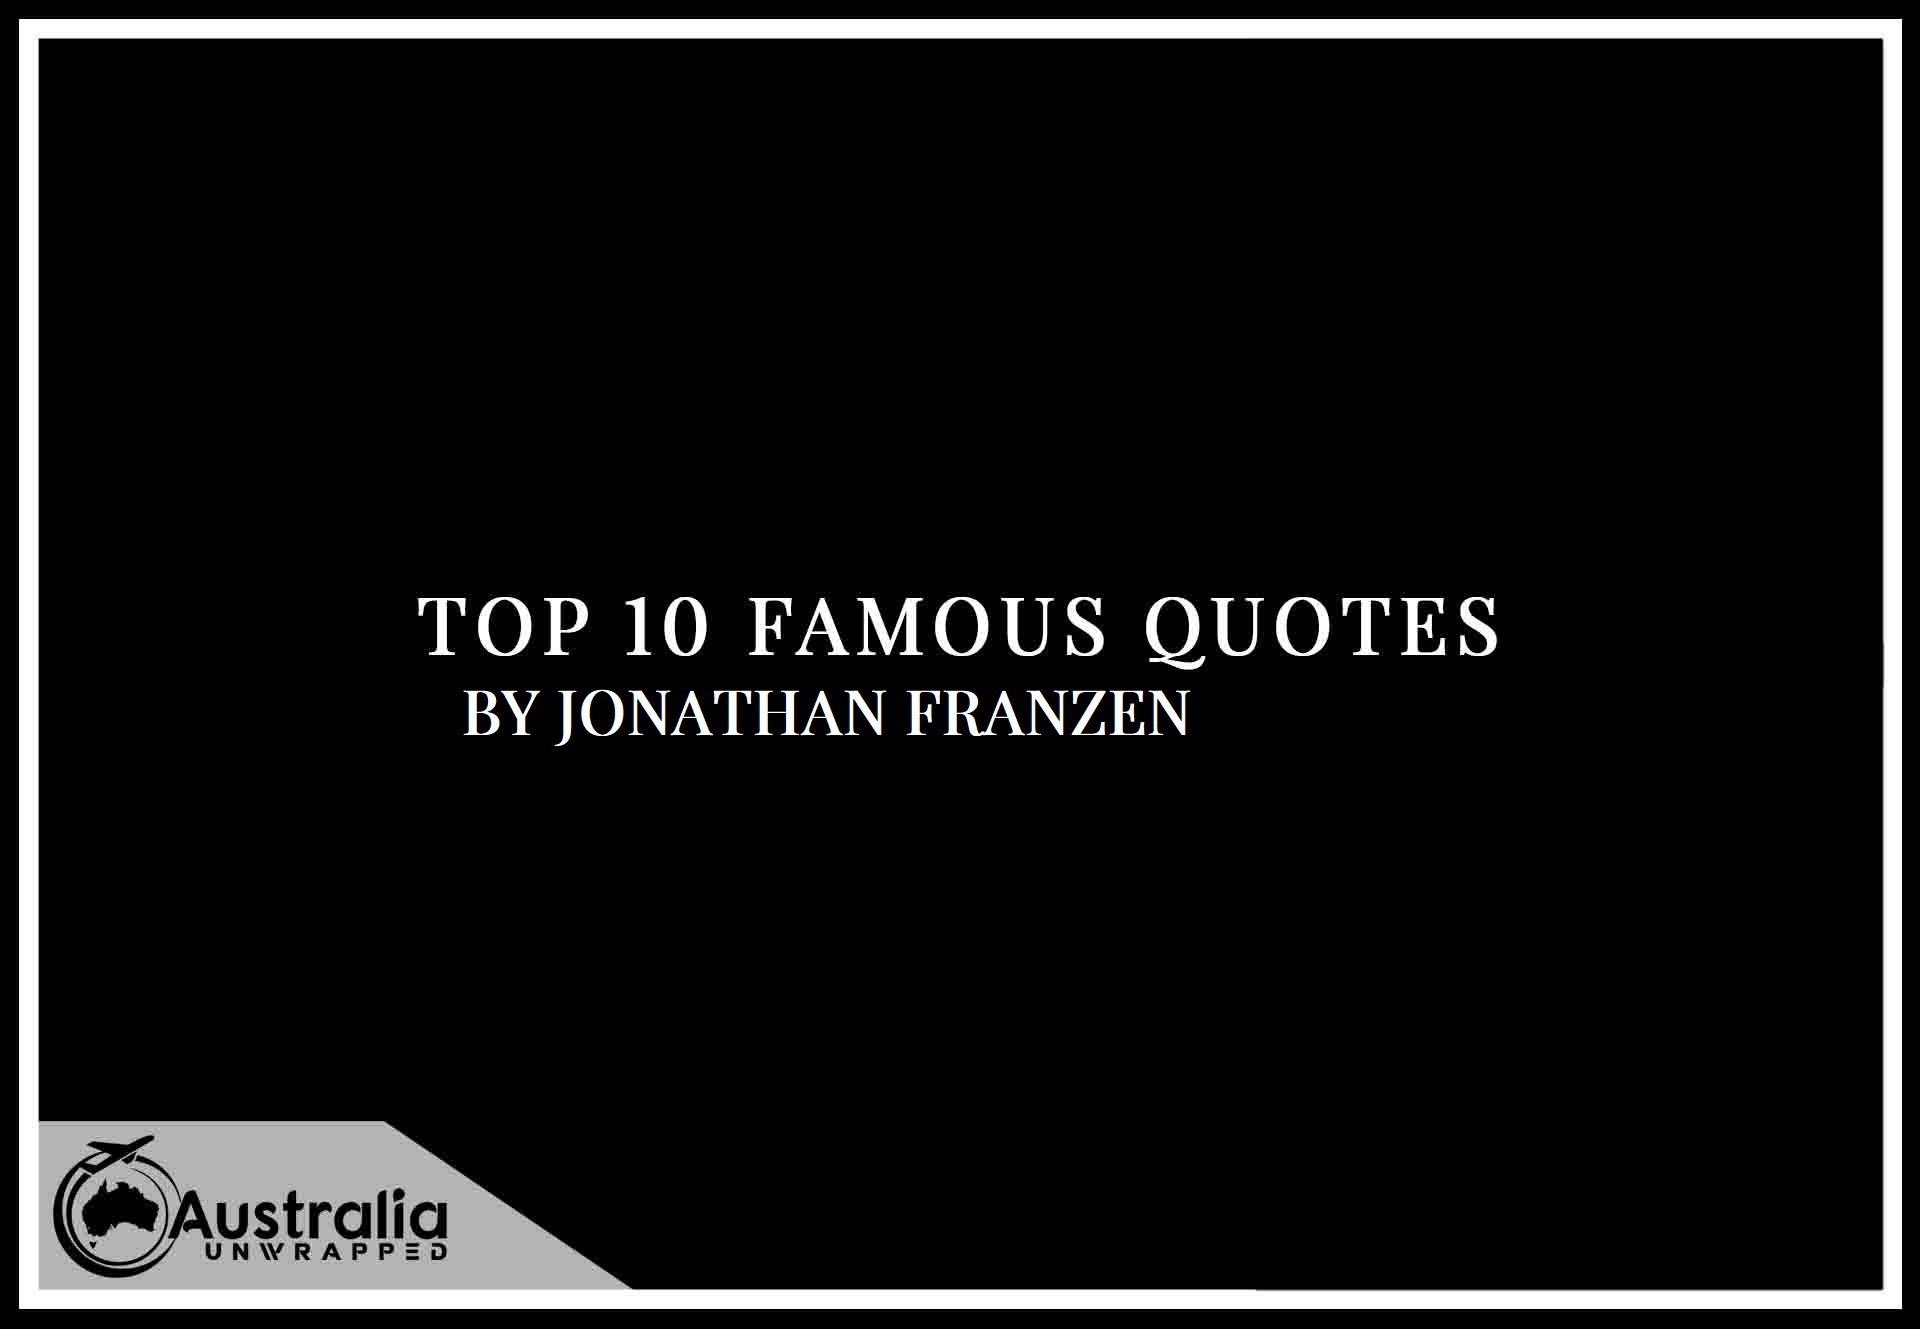 Top 10 Famous Quotes by Author Jonathan Franzen